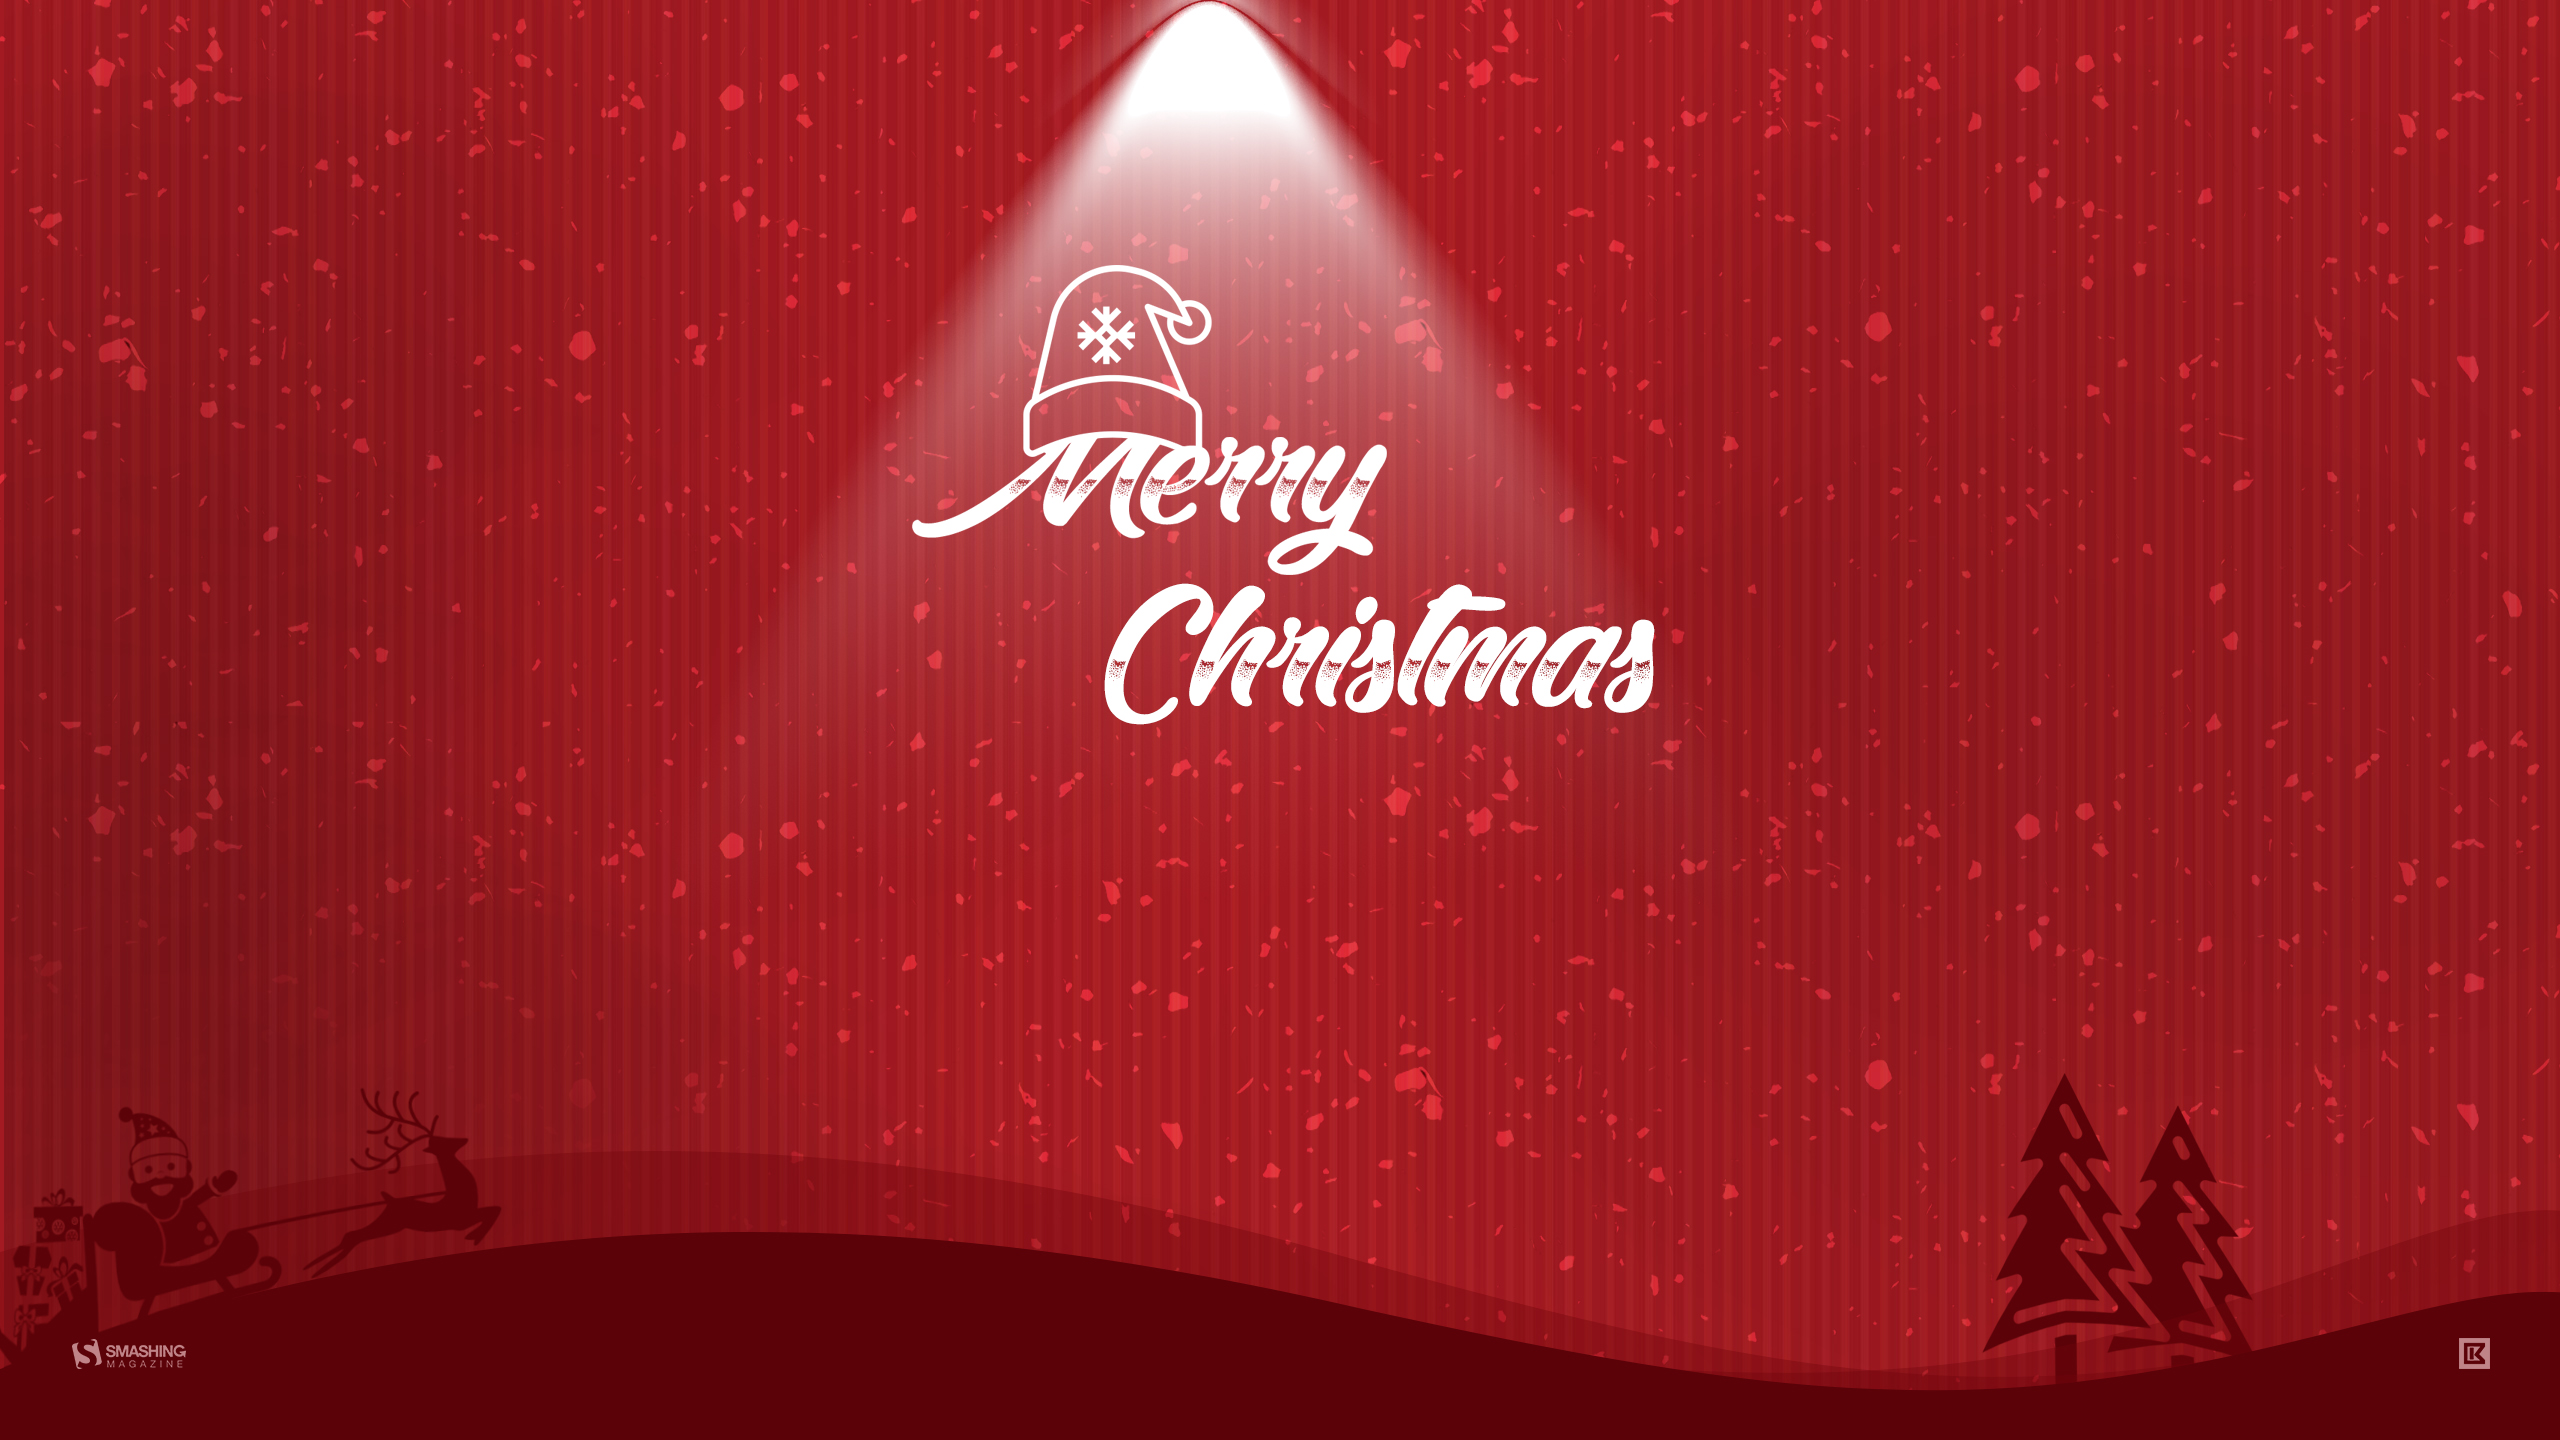 Merry Christmas HD Wallpaper 2560x1440